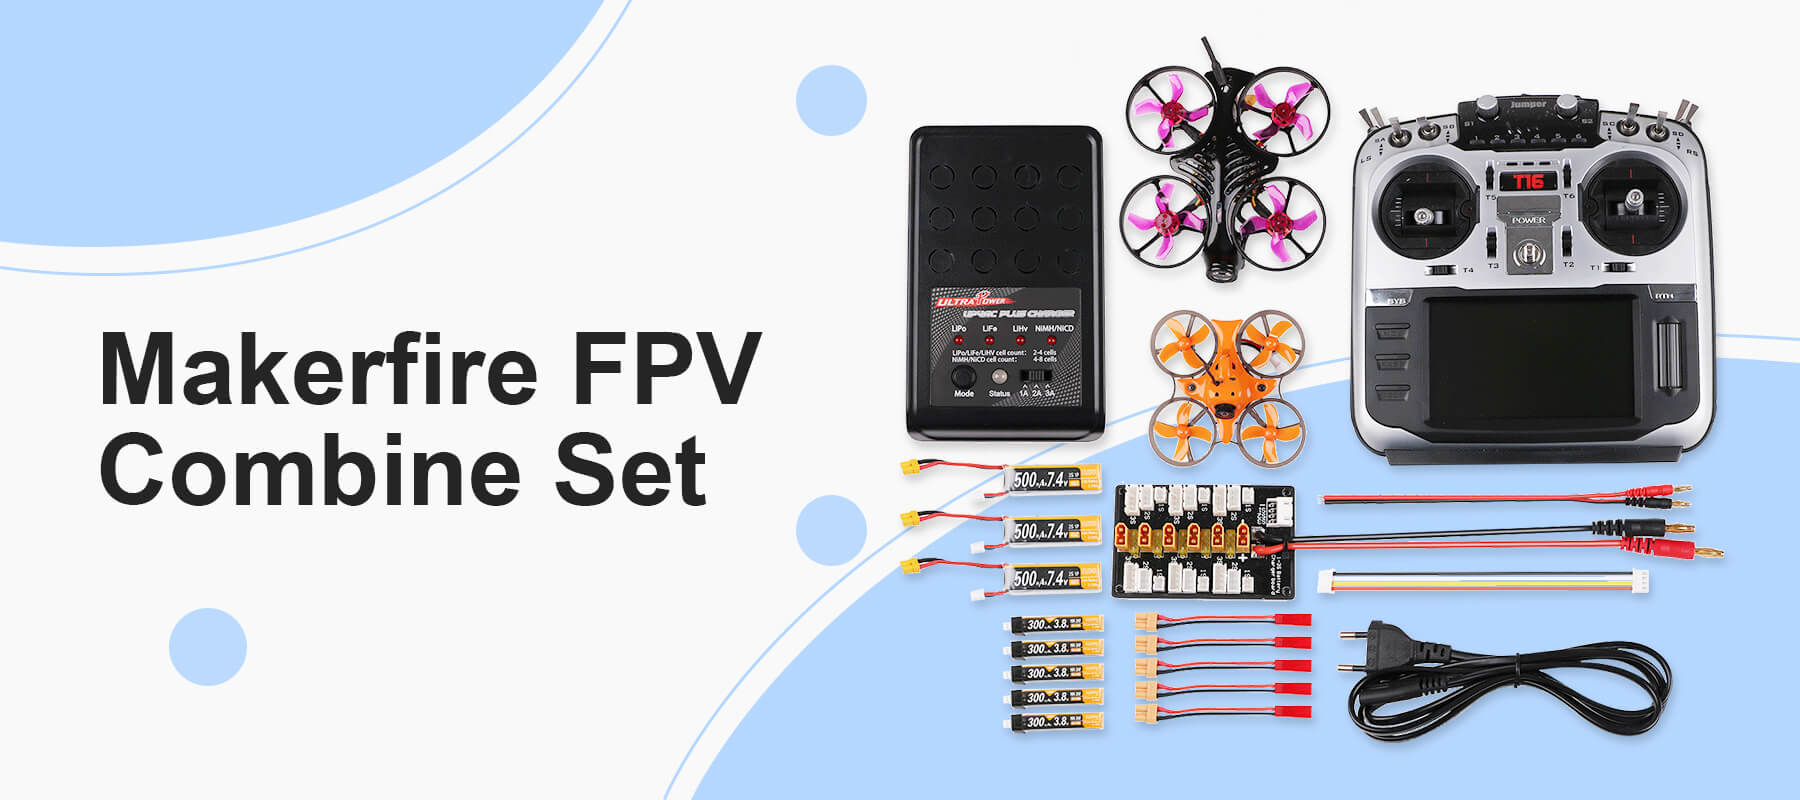 Makerfire Online Store | FPV Racing | Micro Drones | STEAM Education